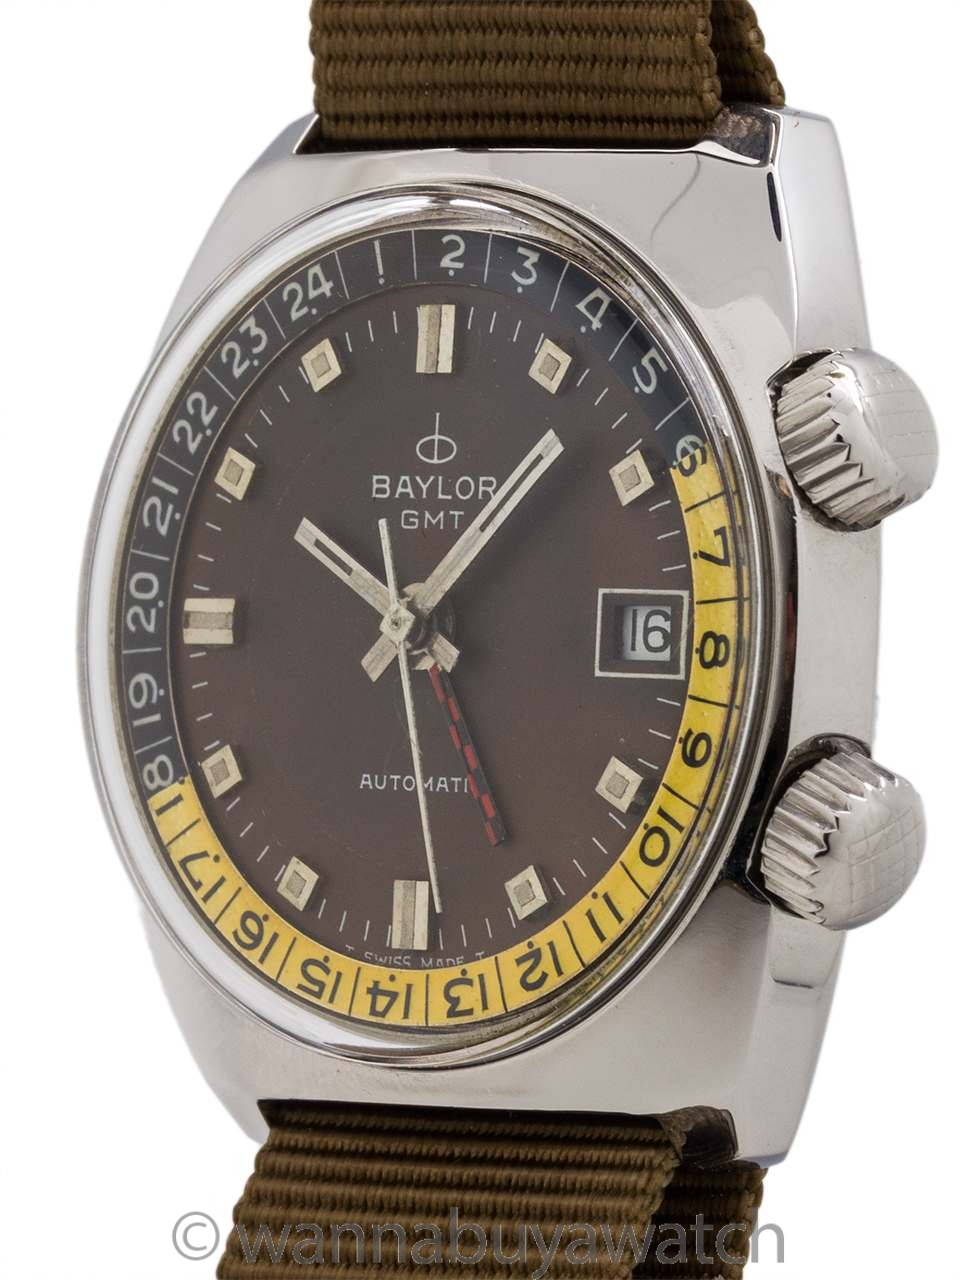 Baylor Diver GMT Stainless Steel circa 1970's